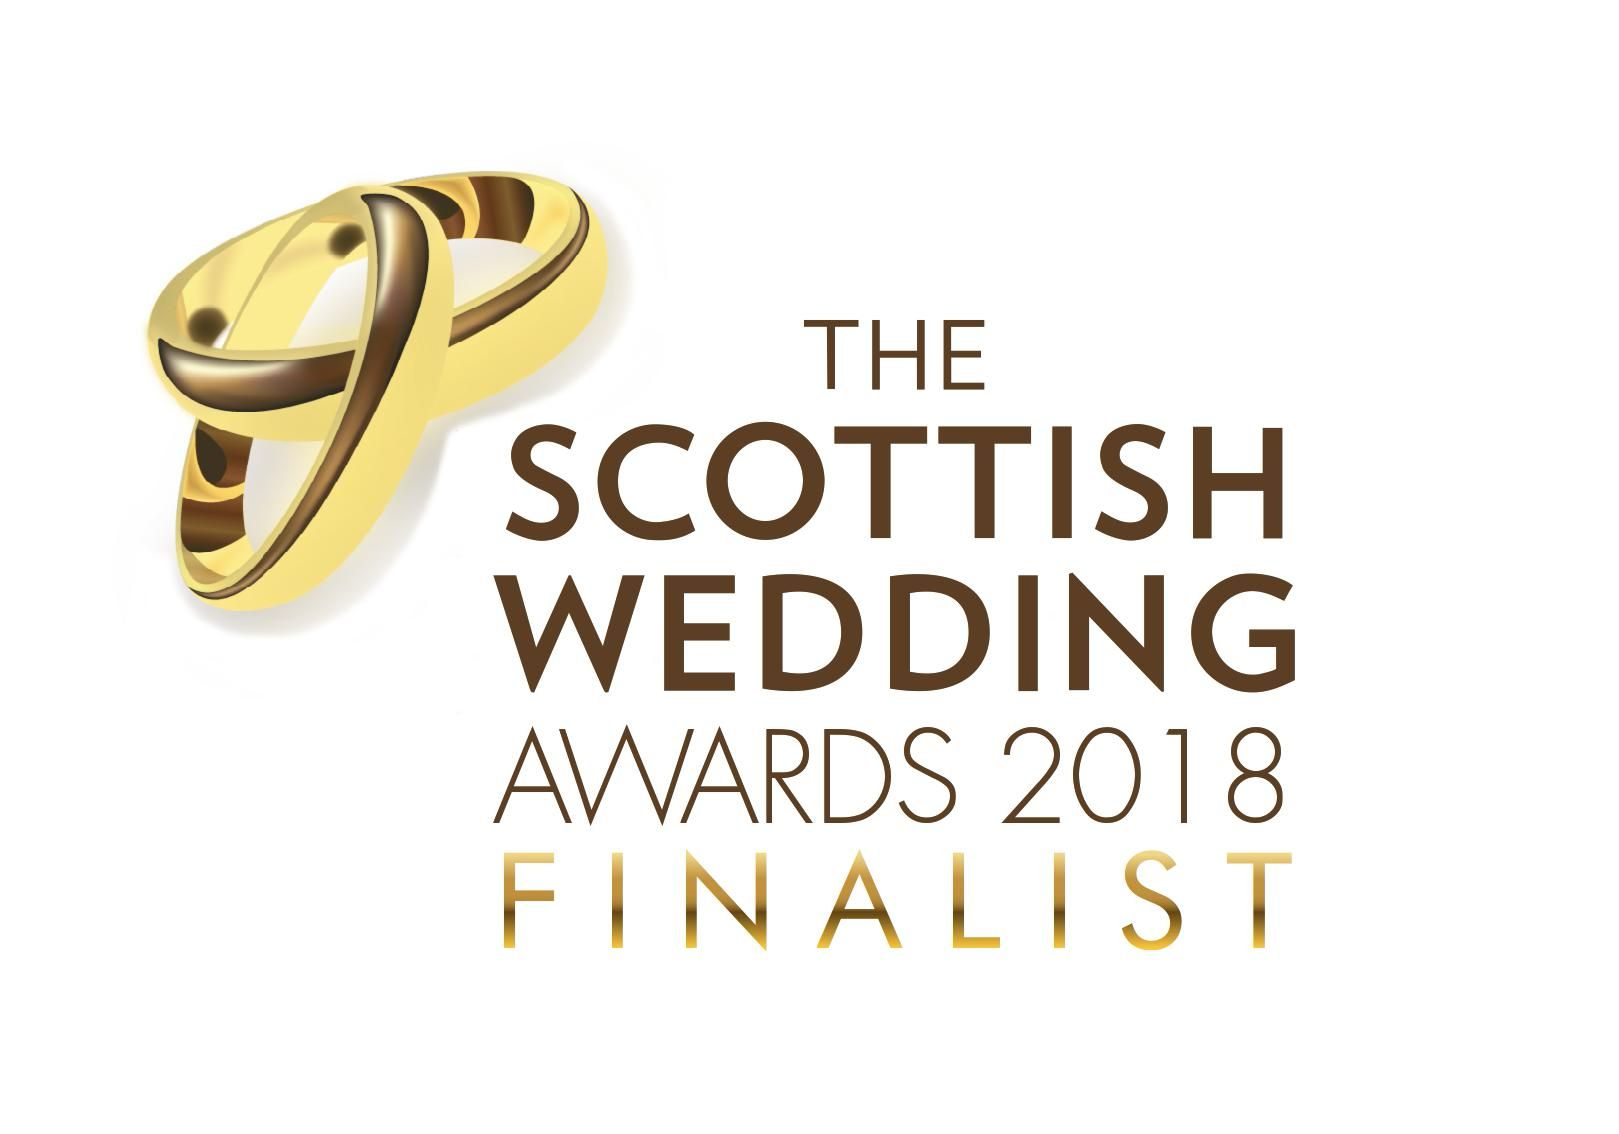 The Scottish wedding awards 2018